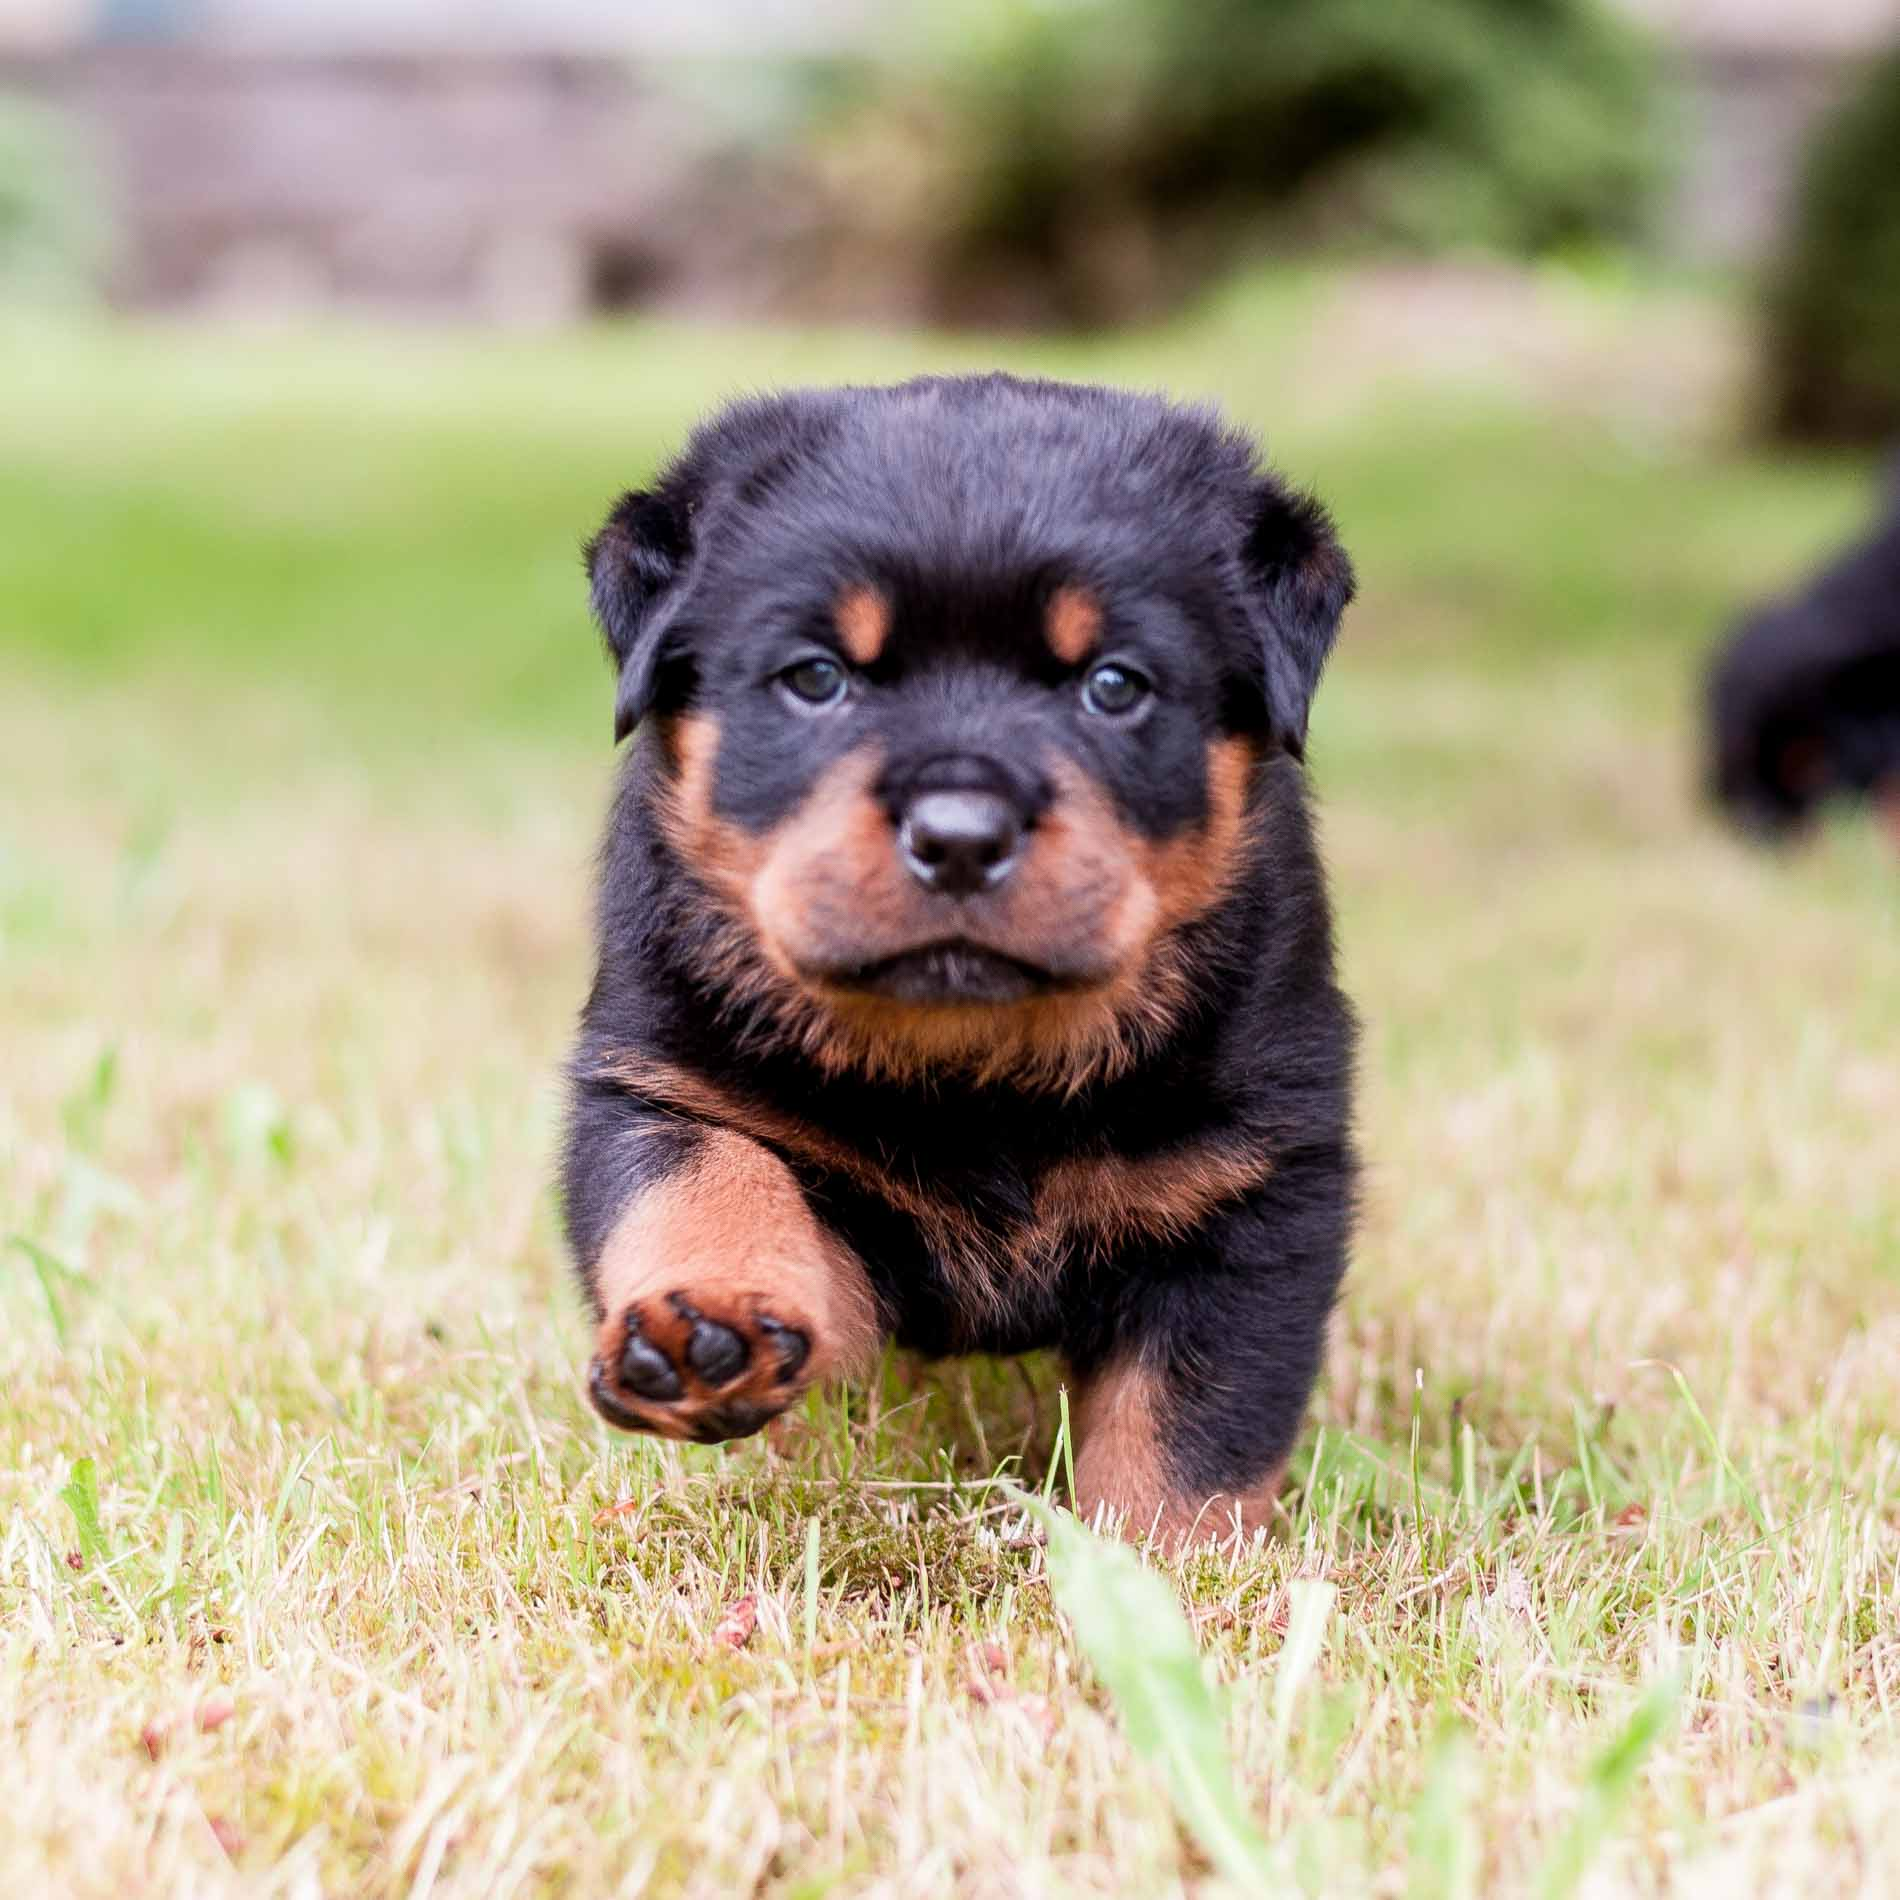 Riverridge Rottweilers Our Rottweilers Are Family